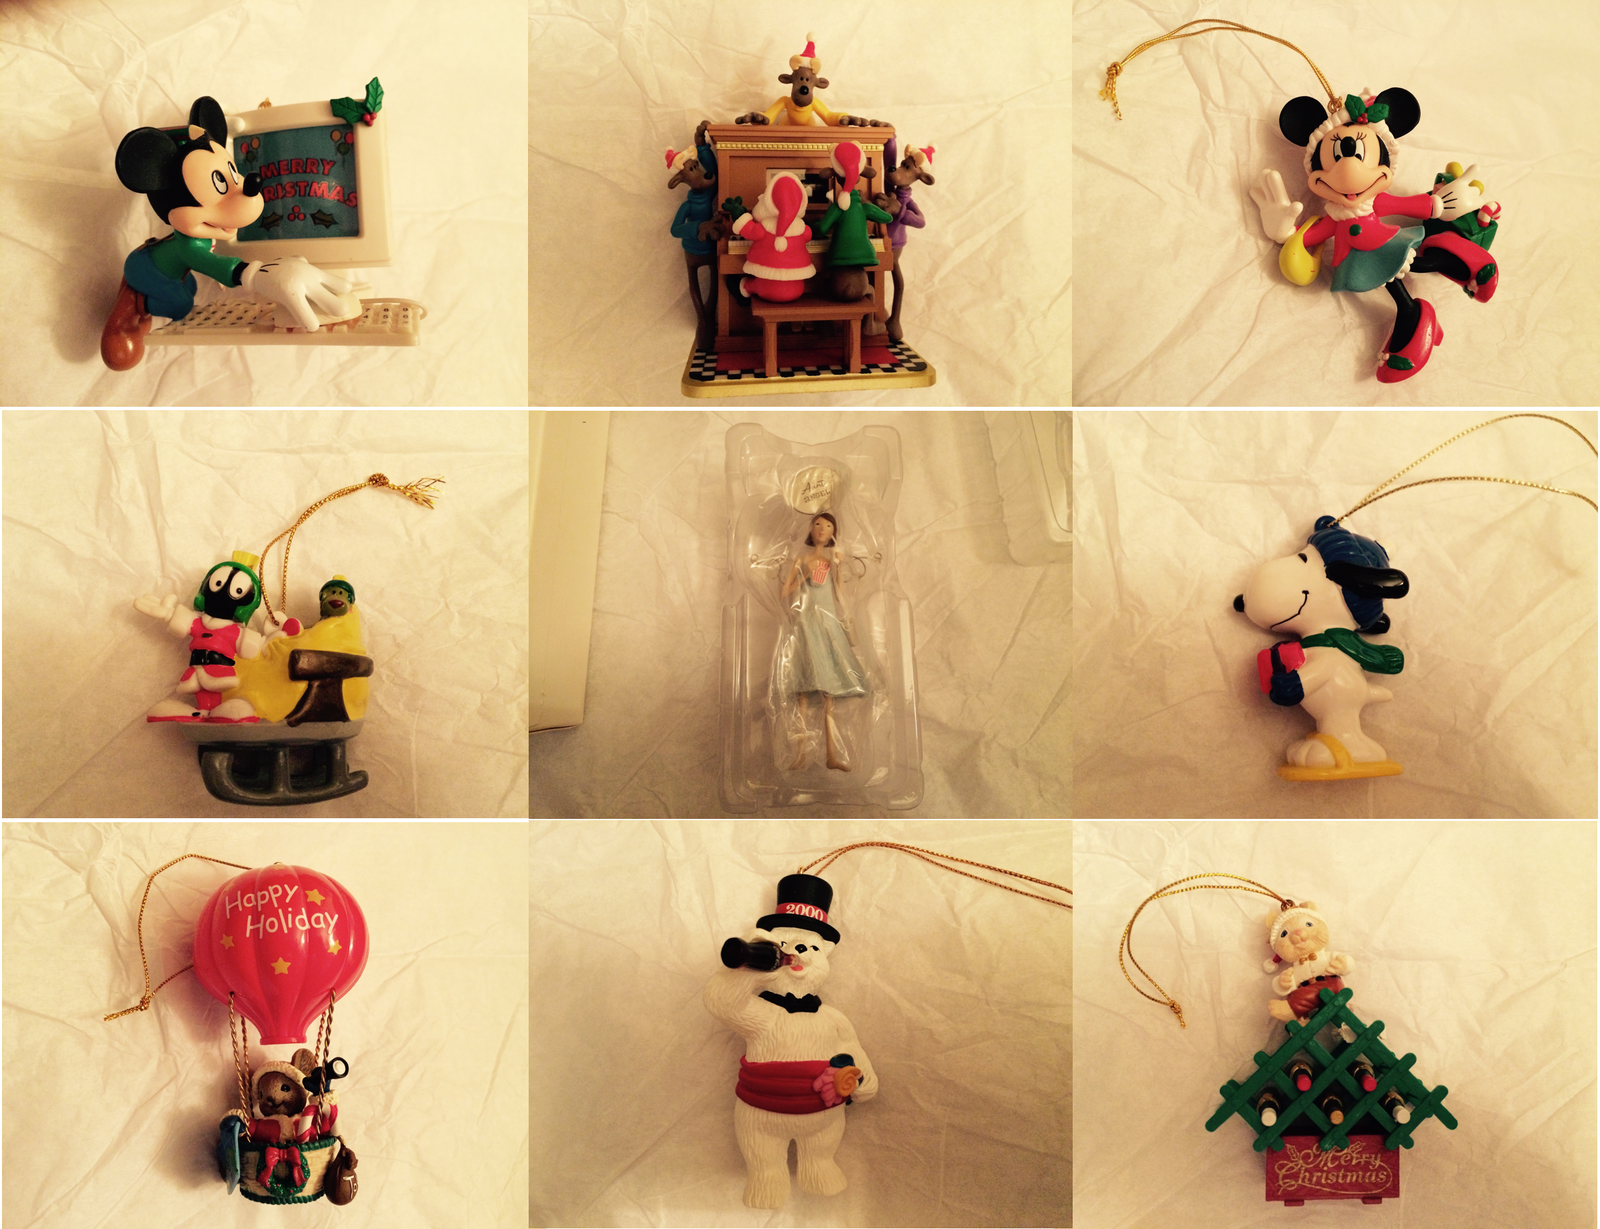 50% OFF - Lot of 9 RETIRED HALLMARK Ornaments 1995 - 2005